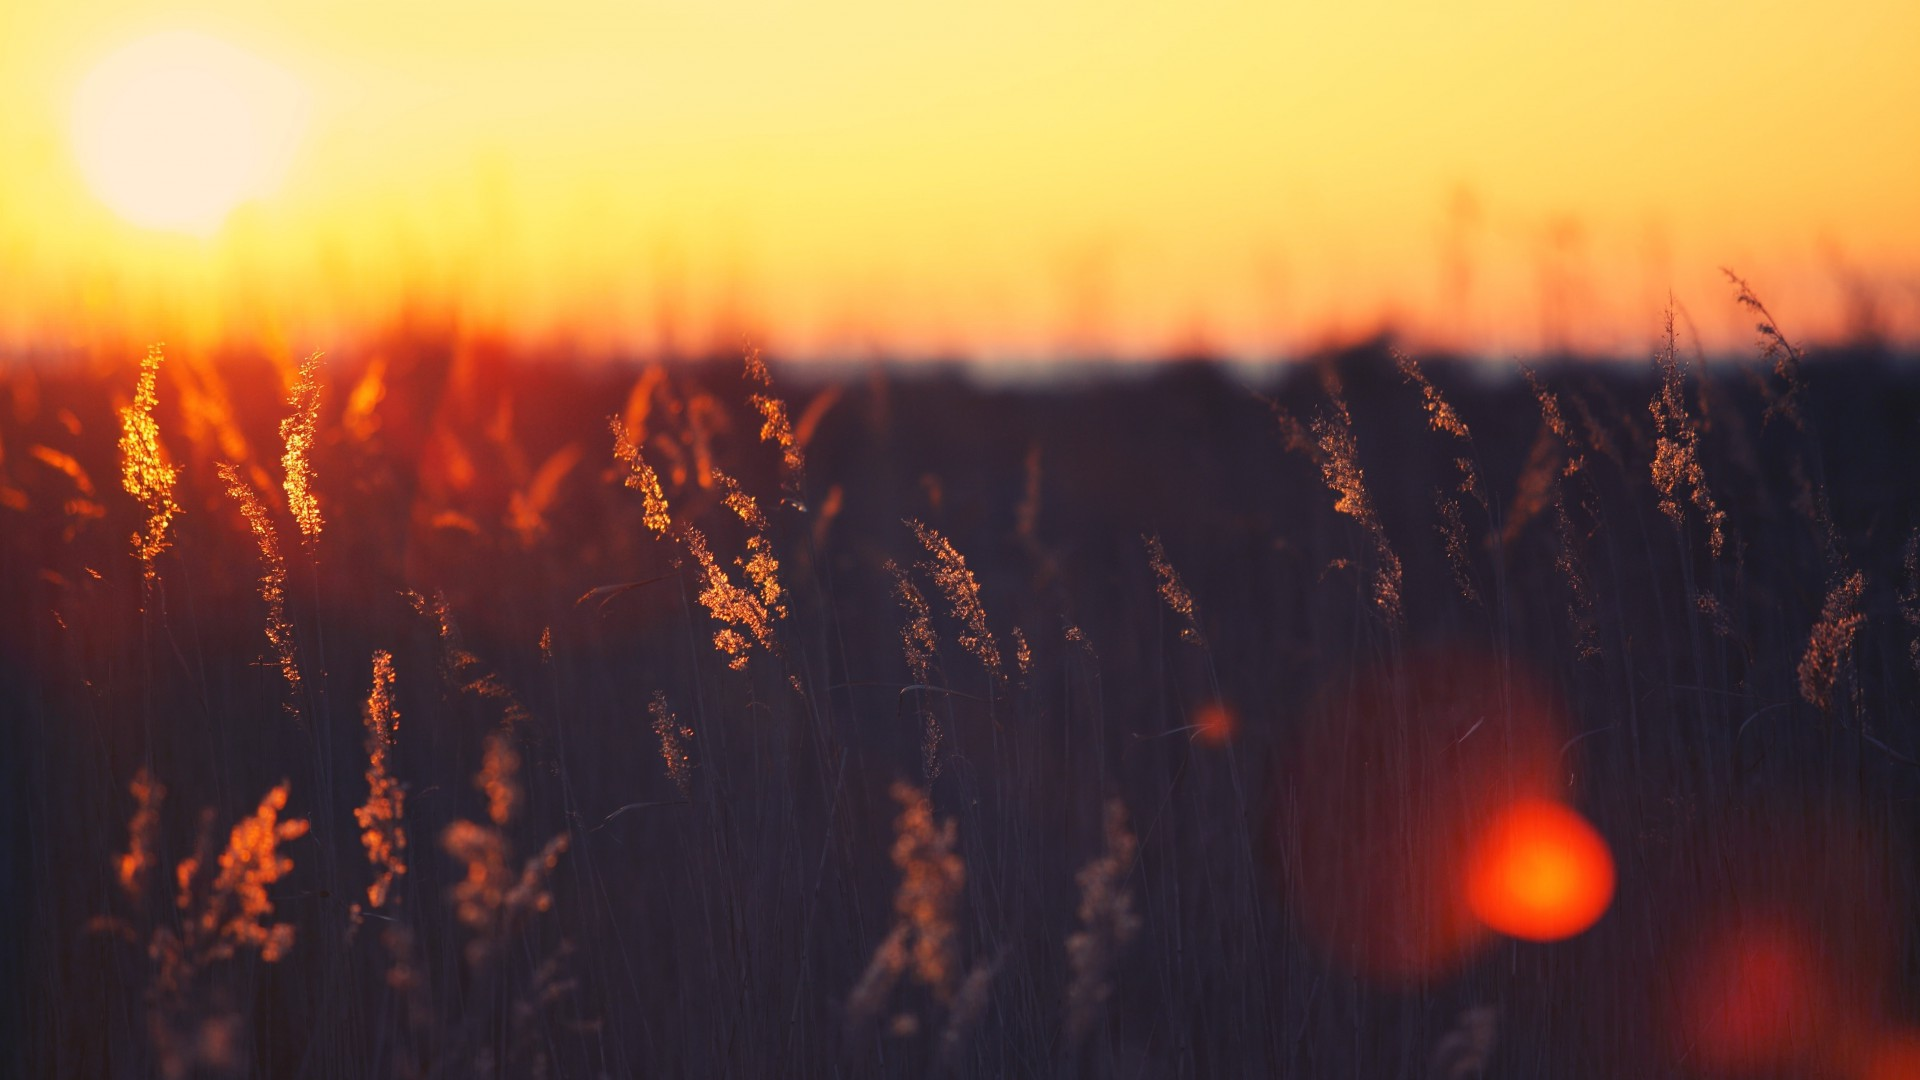 Field, 5k, 4k wallpaper, HD, sunset, grass (horizontal)